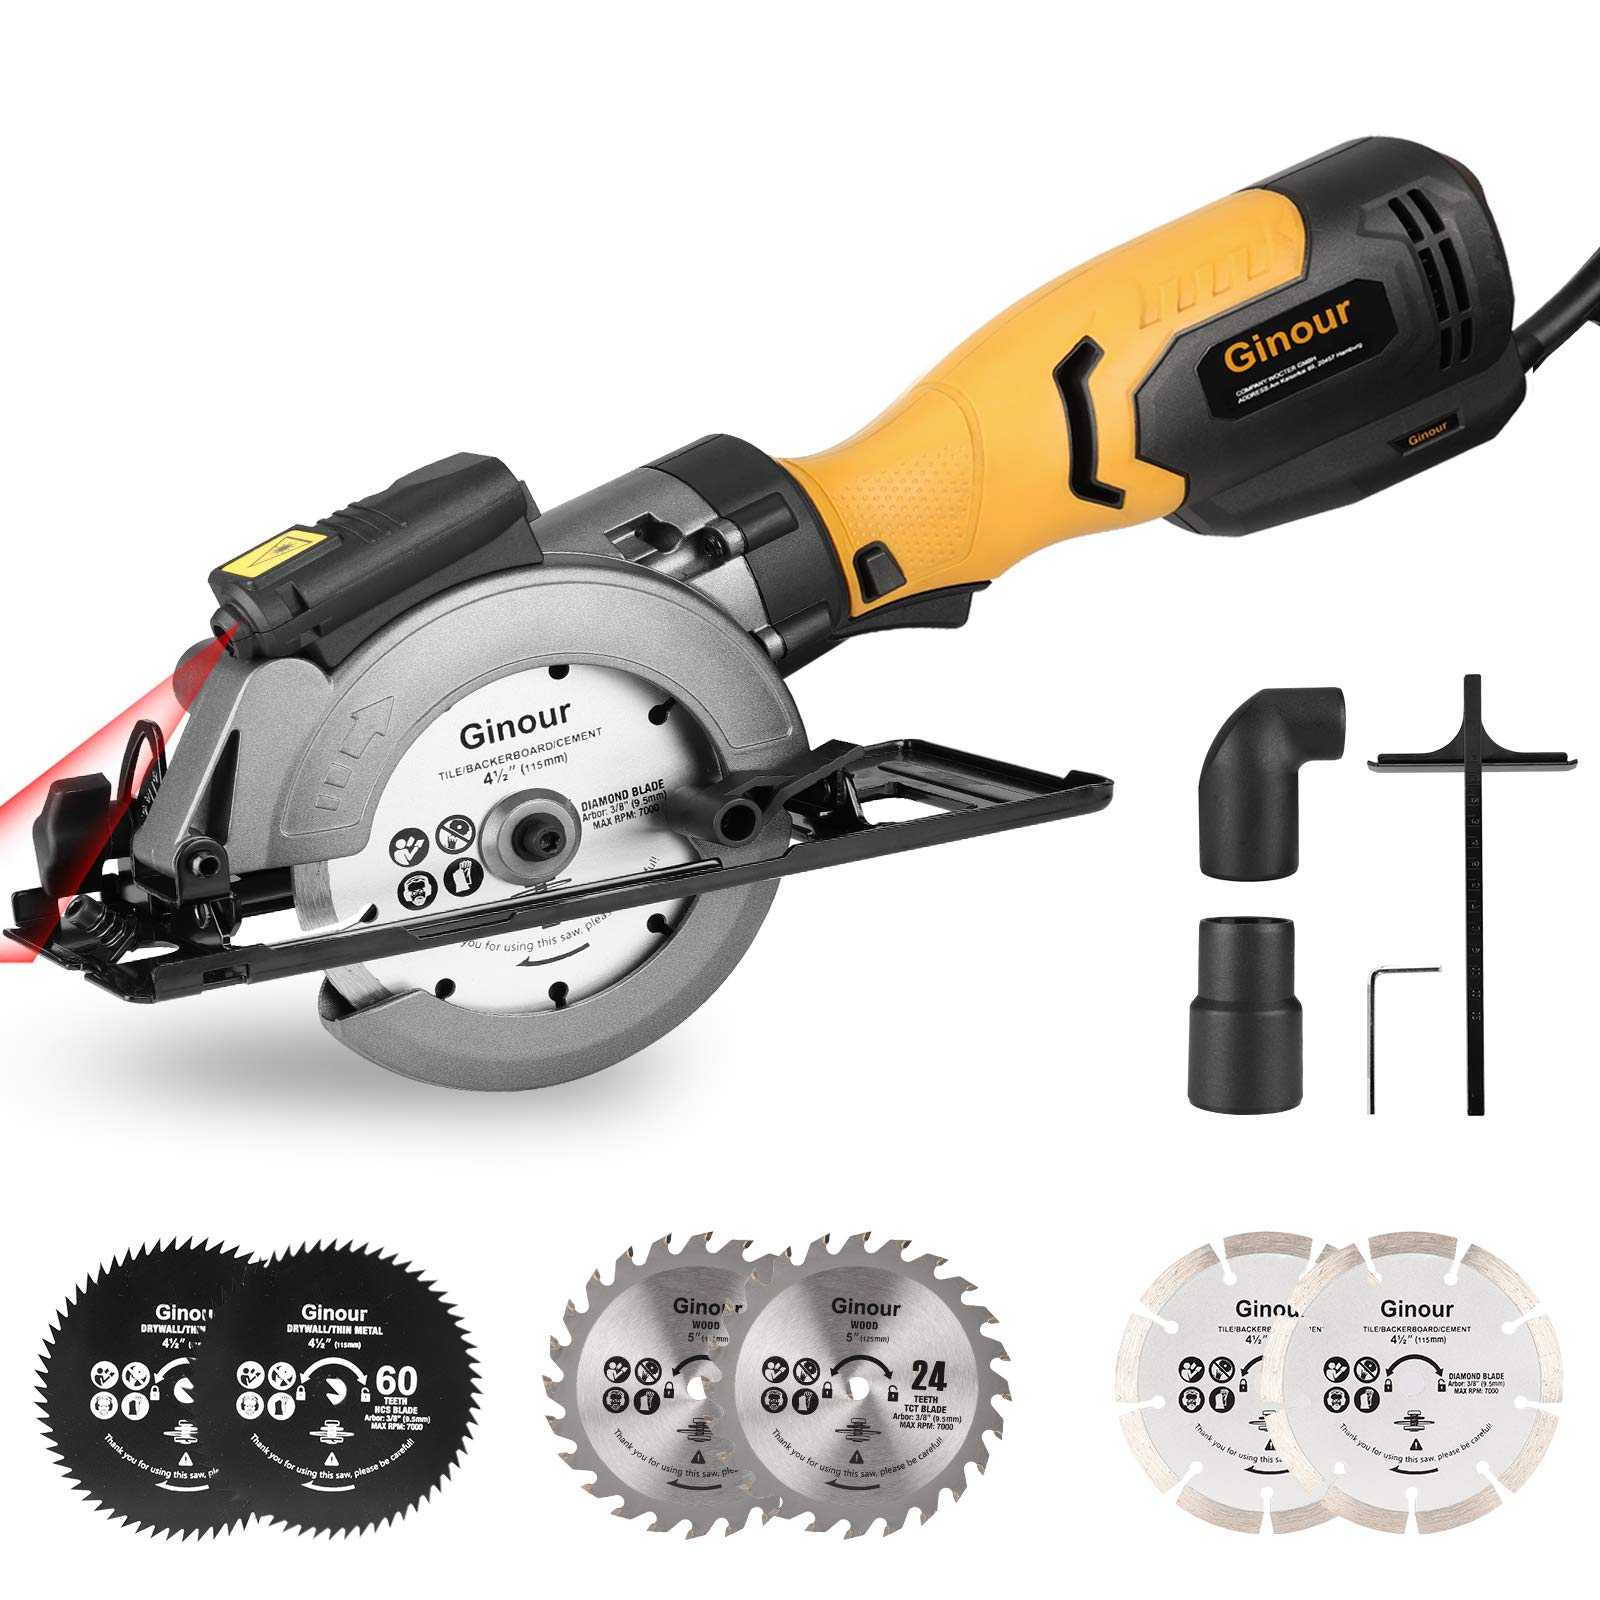 Circular Saw, Ginour 750W 3600RPM Mini Electric Circular Saw with Laser, Cutting Depth 0-48mm, 2 * 40T Saw Blades 125MM, 2 * 60T Saw Blades 115MM, 2 Diamond Saw Blade 116MM, Cutting Wood, Metal